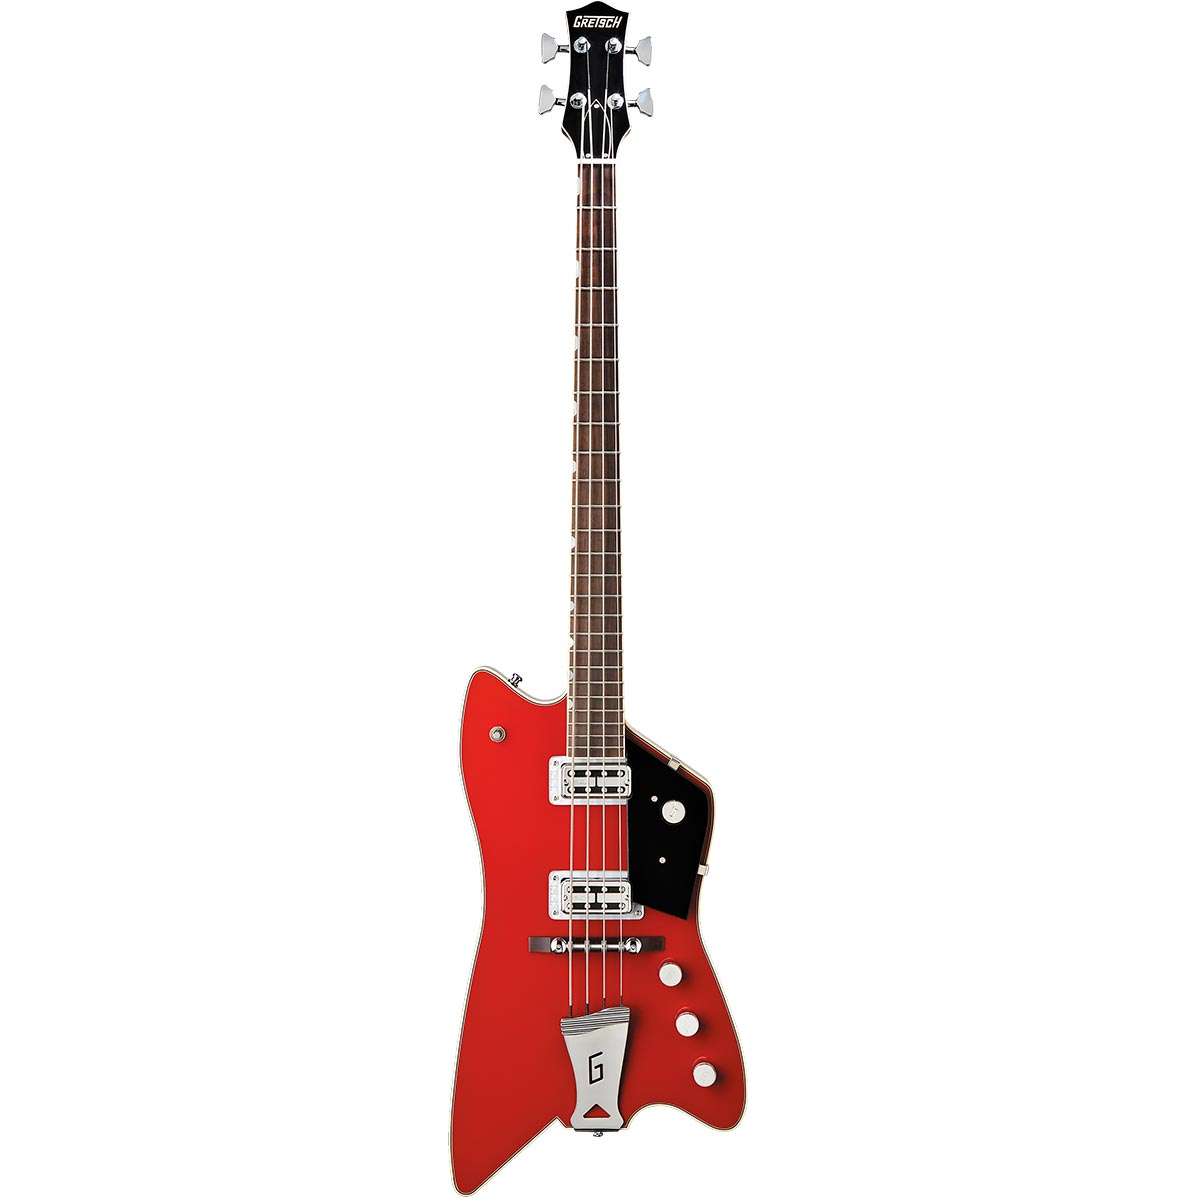 Gretsch G6199 Billy Bo Bass FRD - Bajo eléctrico